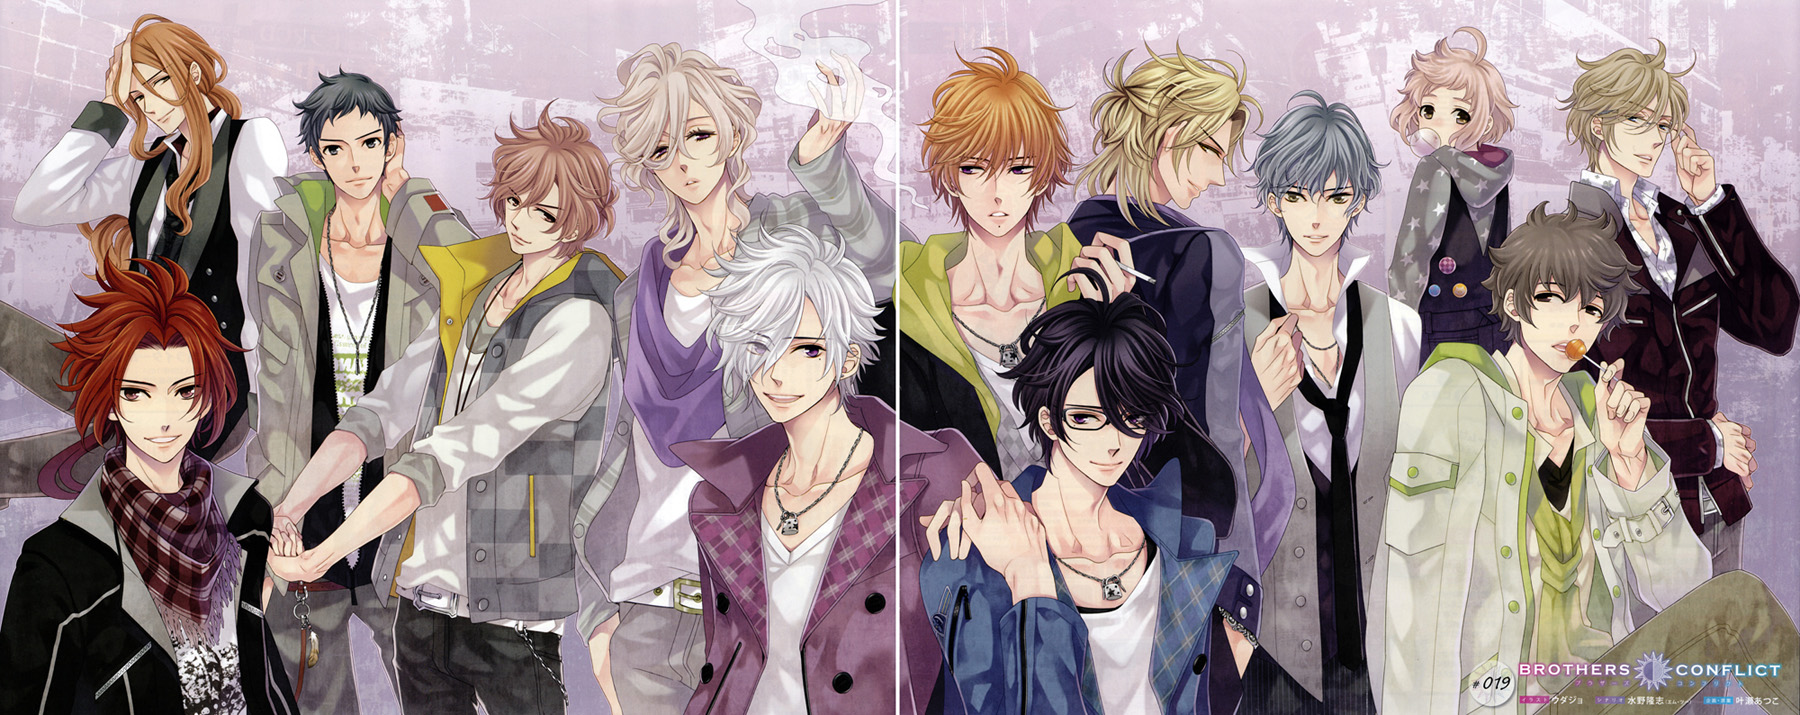 Brothers Conflict anim...